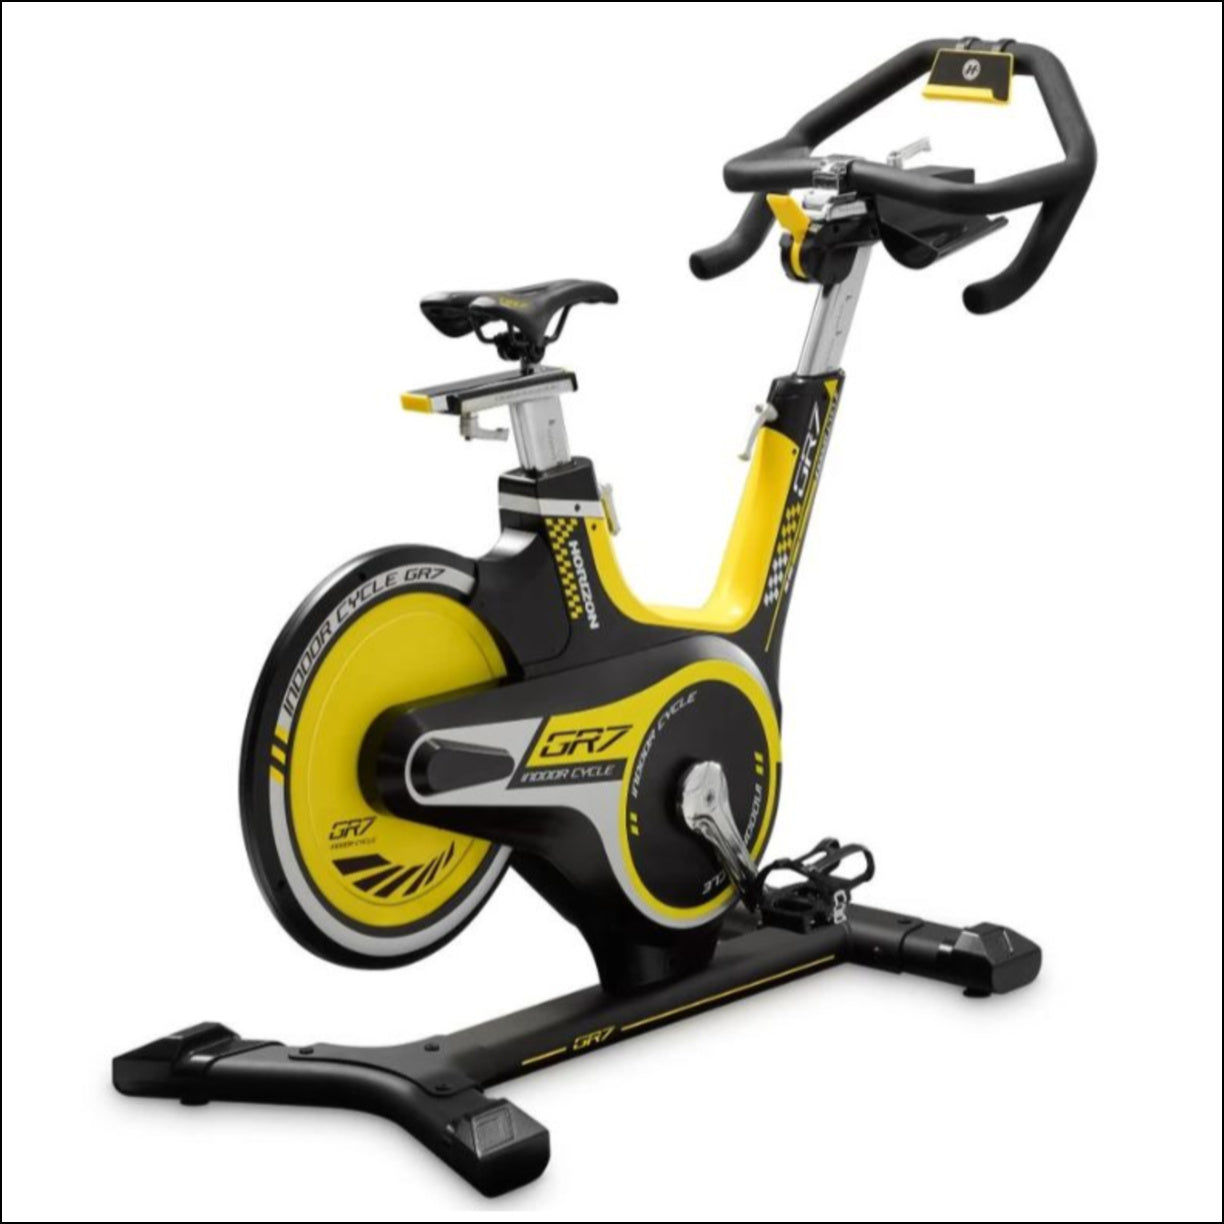 Spin Bikes Australia Directory listing HORIZON GR7 SPIN BIKE New to the Horizon family, the GR Series is set to change home fitness forever with a design that brings the feel of real road cycling right into your home.Inspired by the design of Tour de France cycles, everything from the perfected geometry of our frame to the ergonomically adjustable, highly